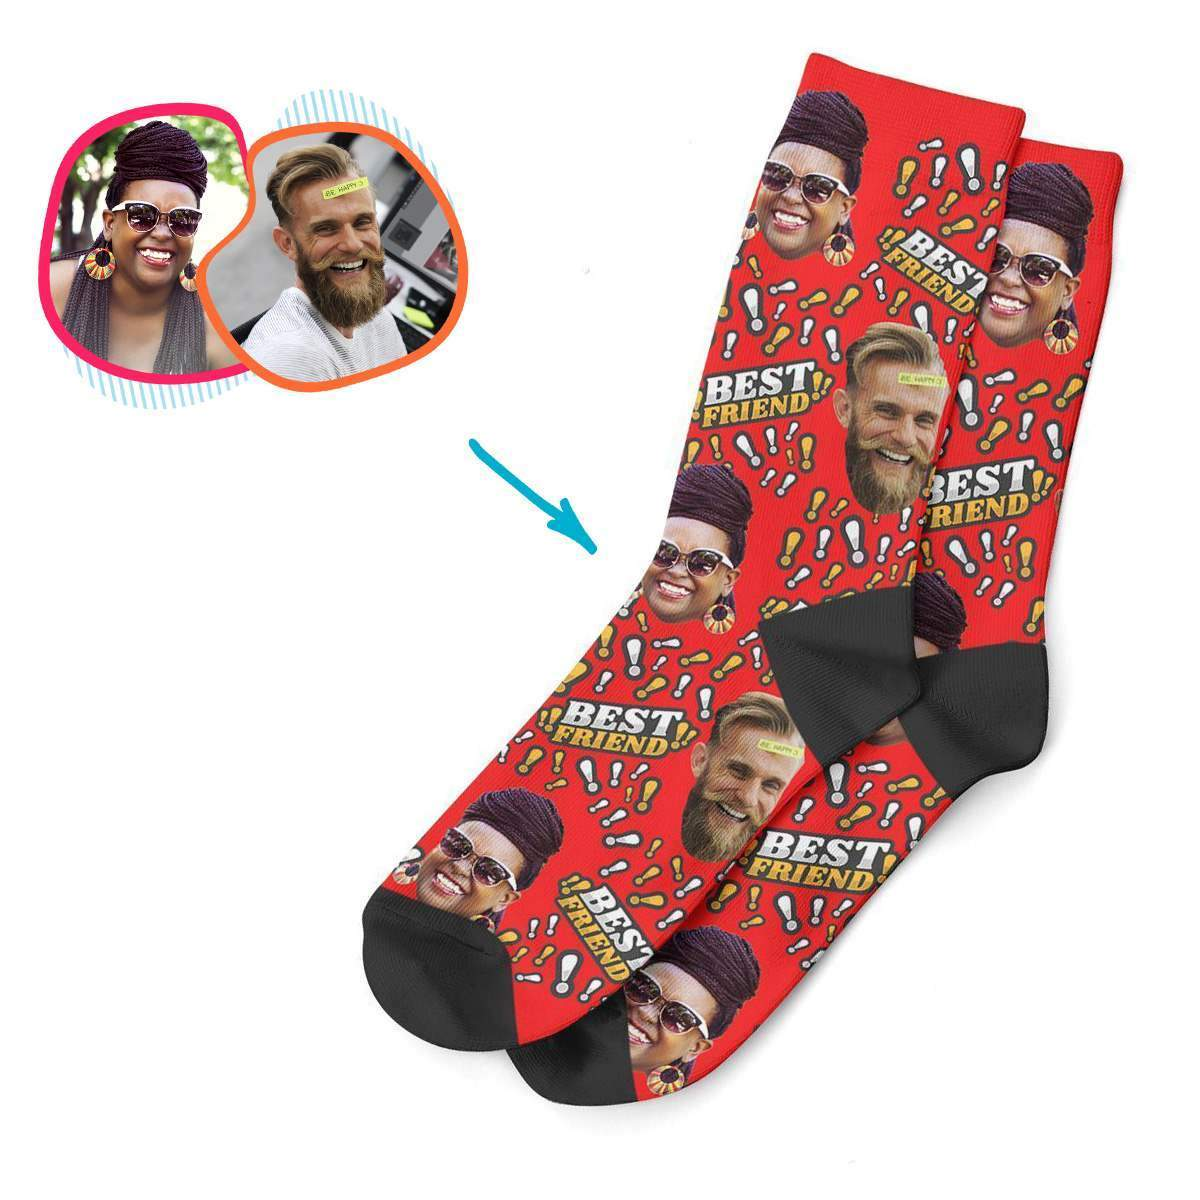 red Best Friend socks personalized with photo of face printed on them